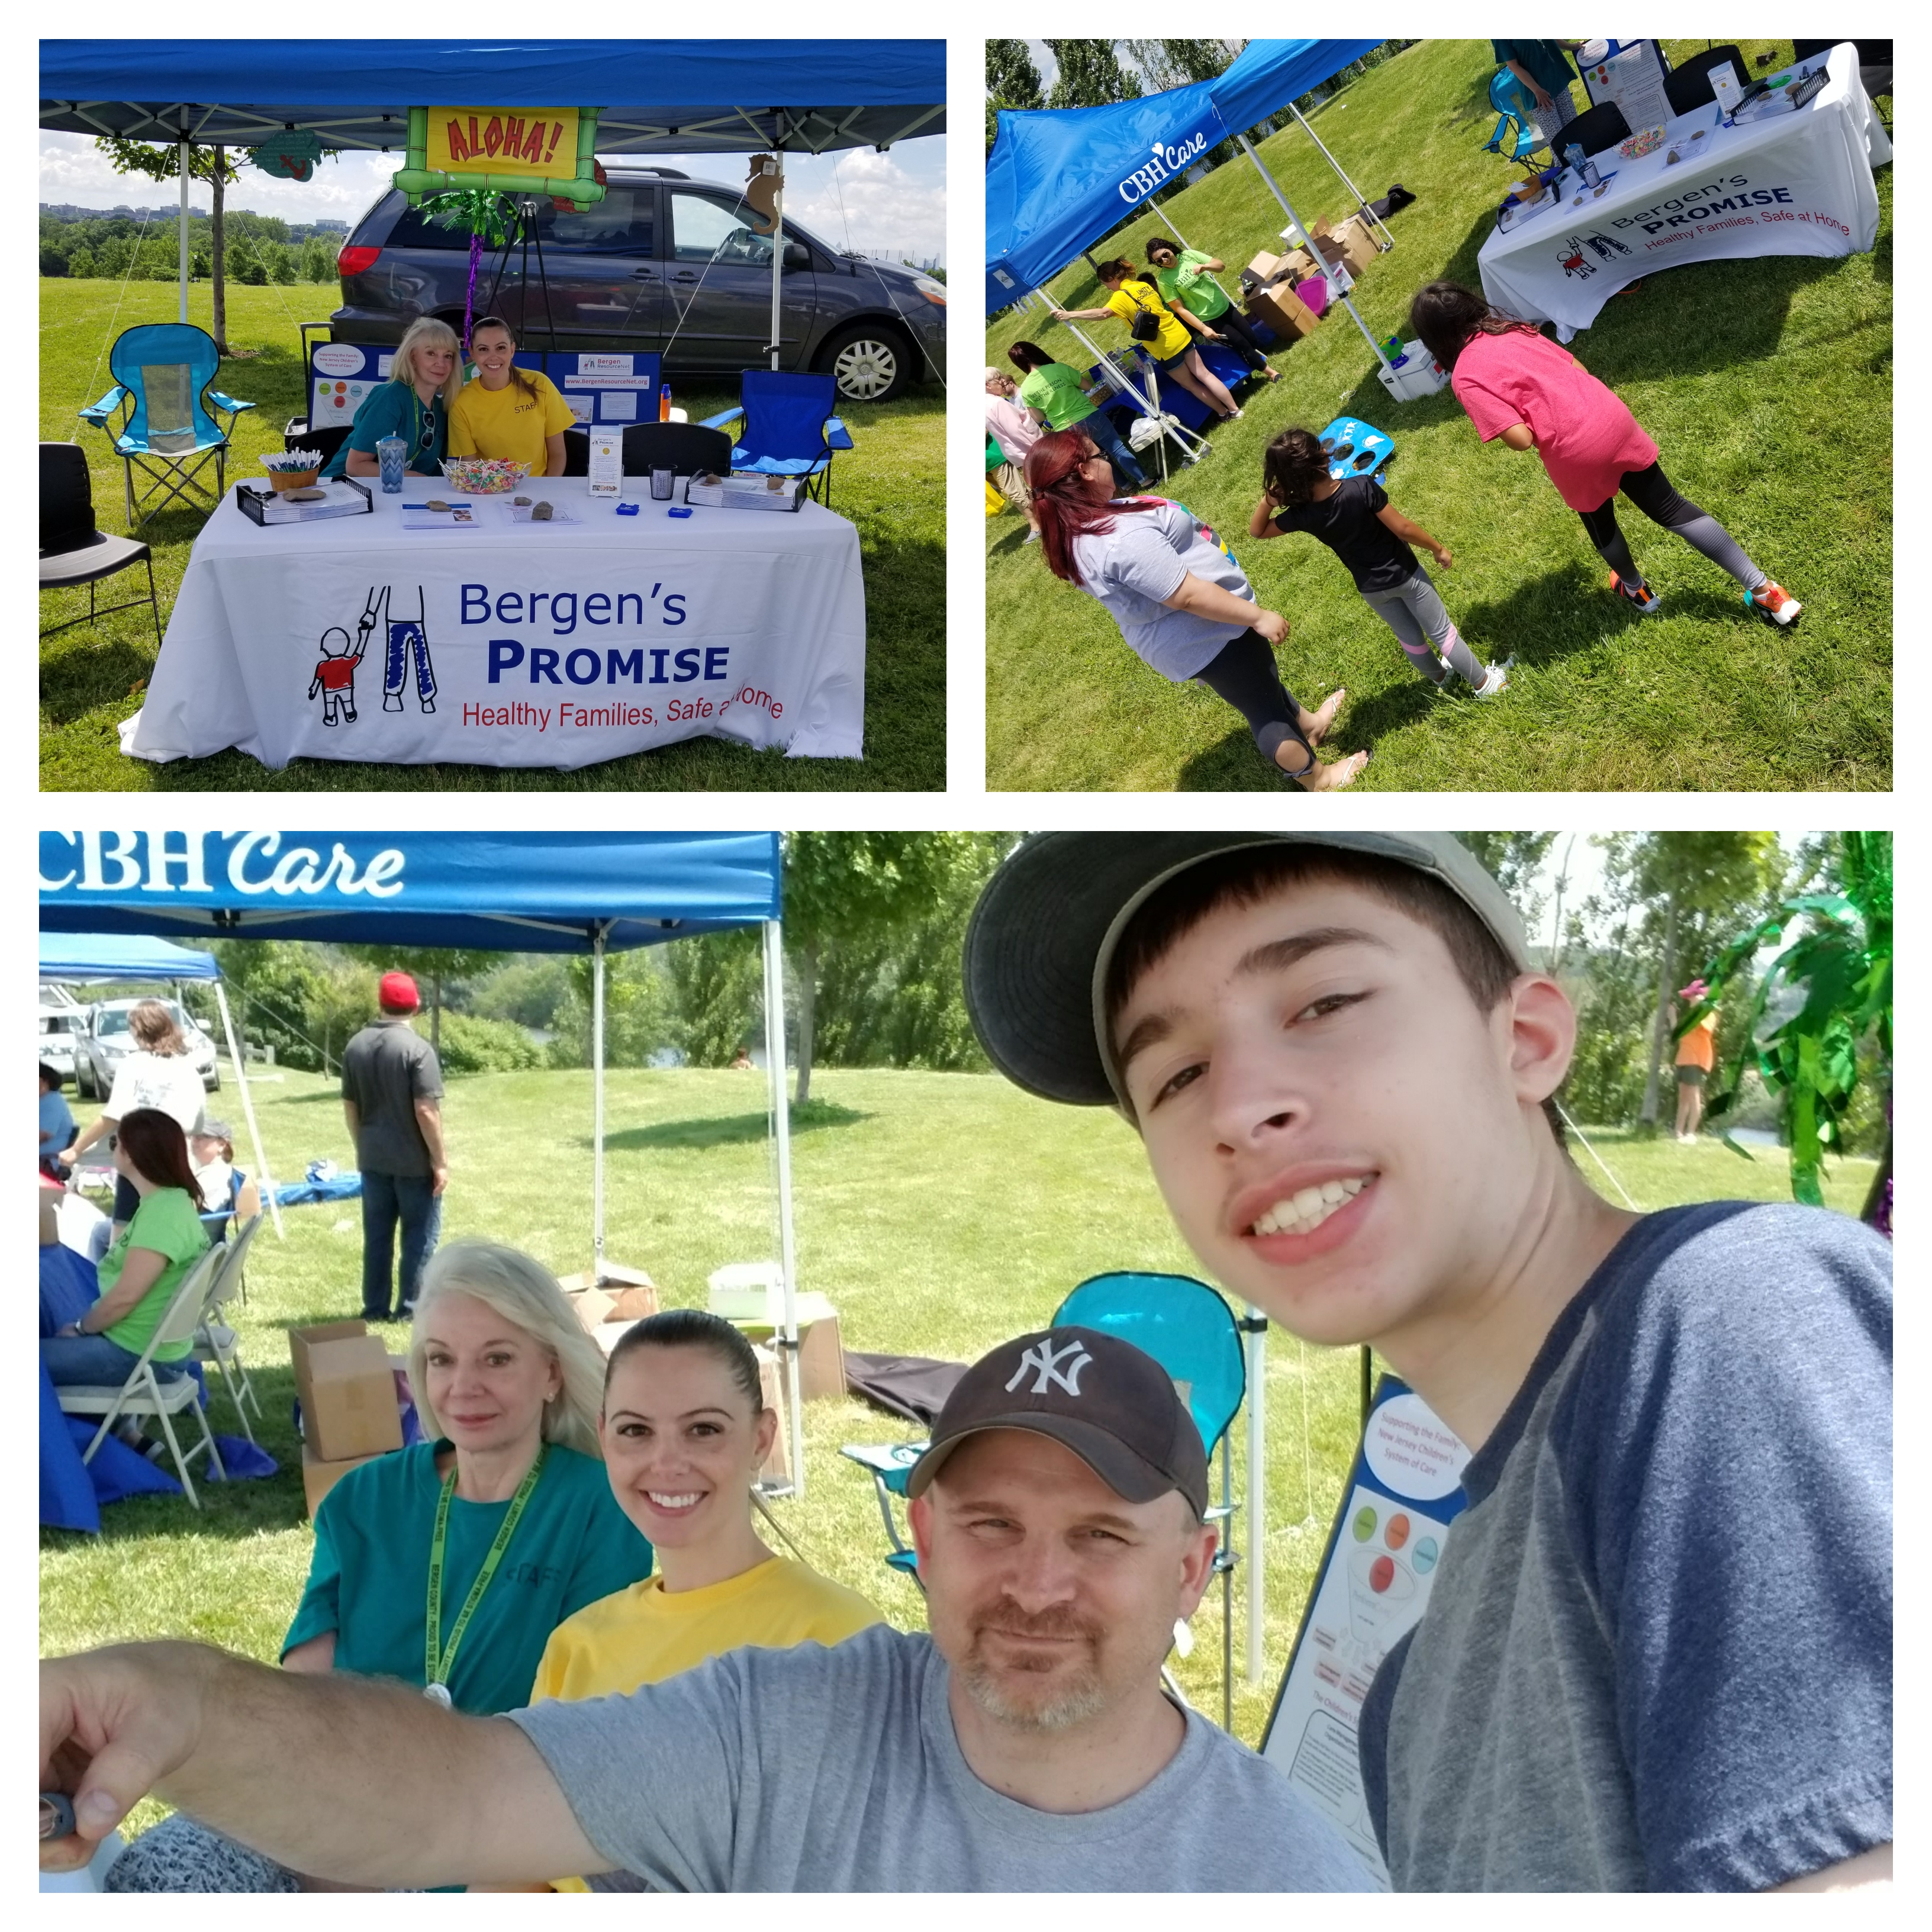 Bergen's Promise exhibits at Unity in the Community Event